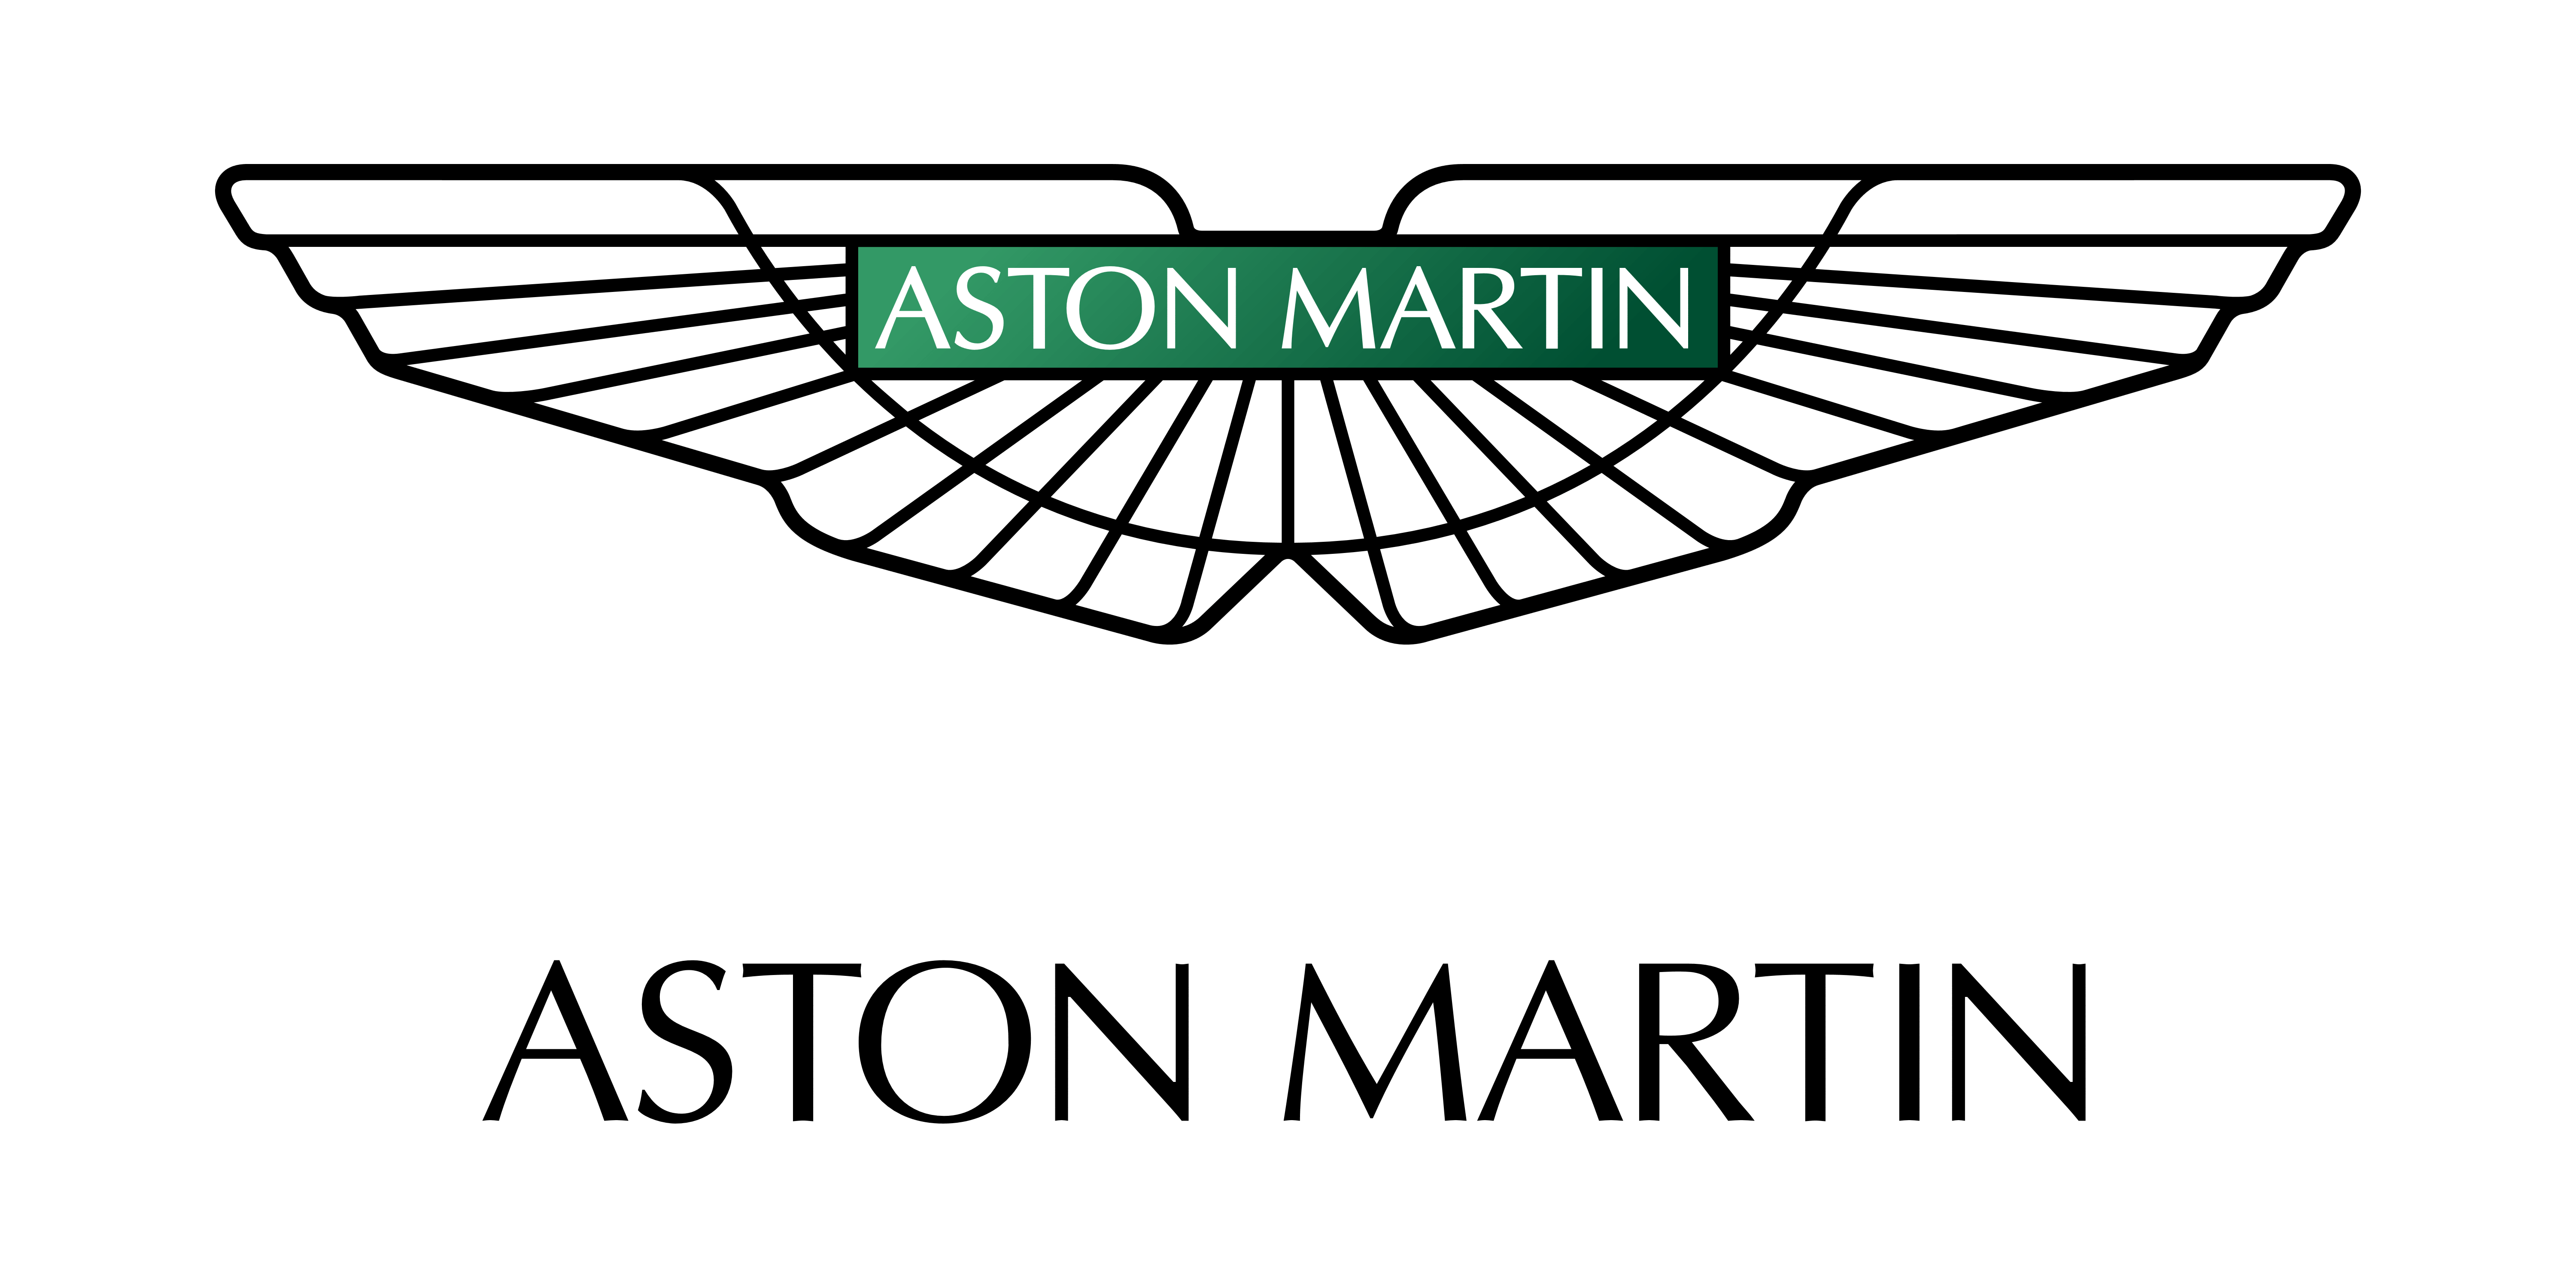 http://rpmautolease.com/wp-content/uploads/2017/08/Aston-Martin-logo-2003-6000x3000.png